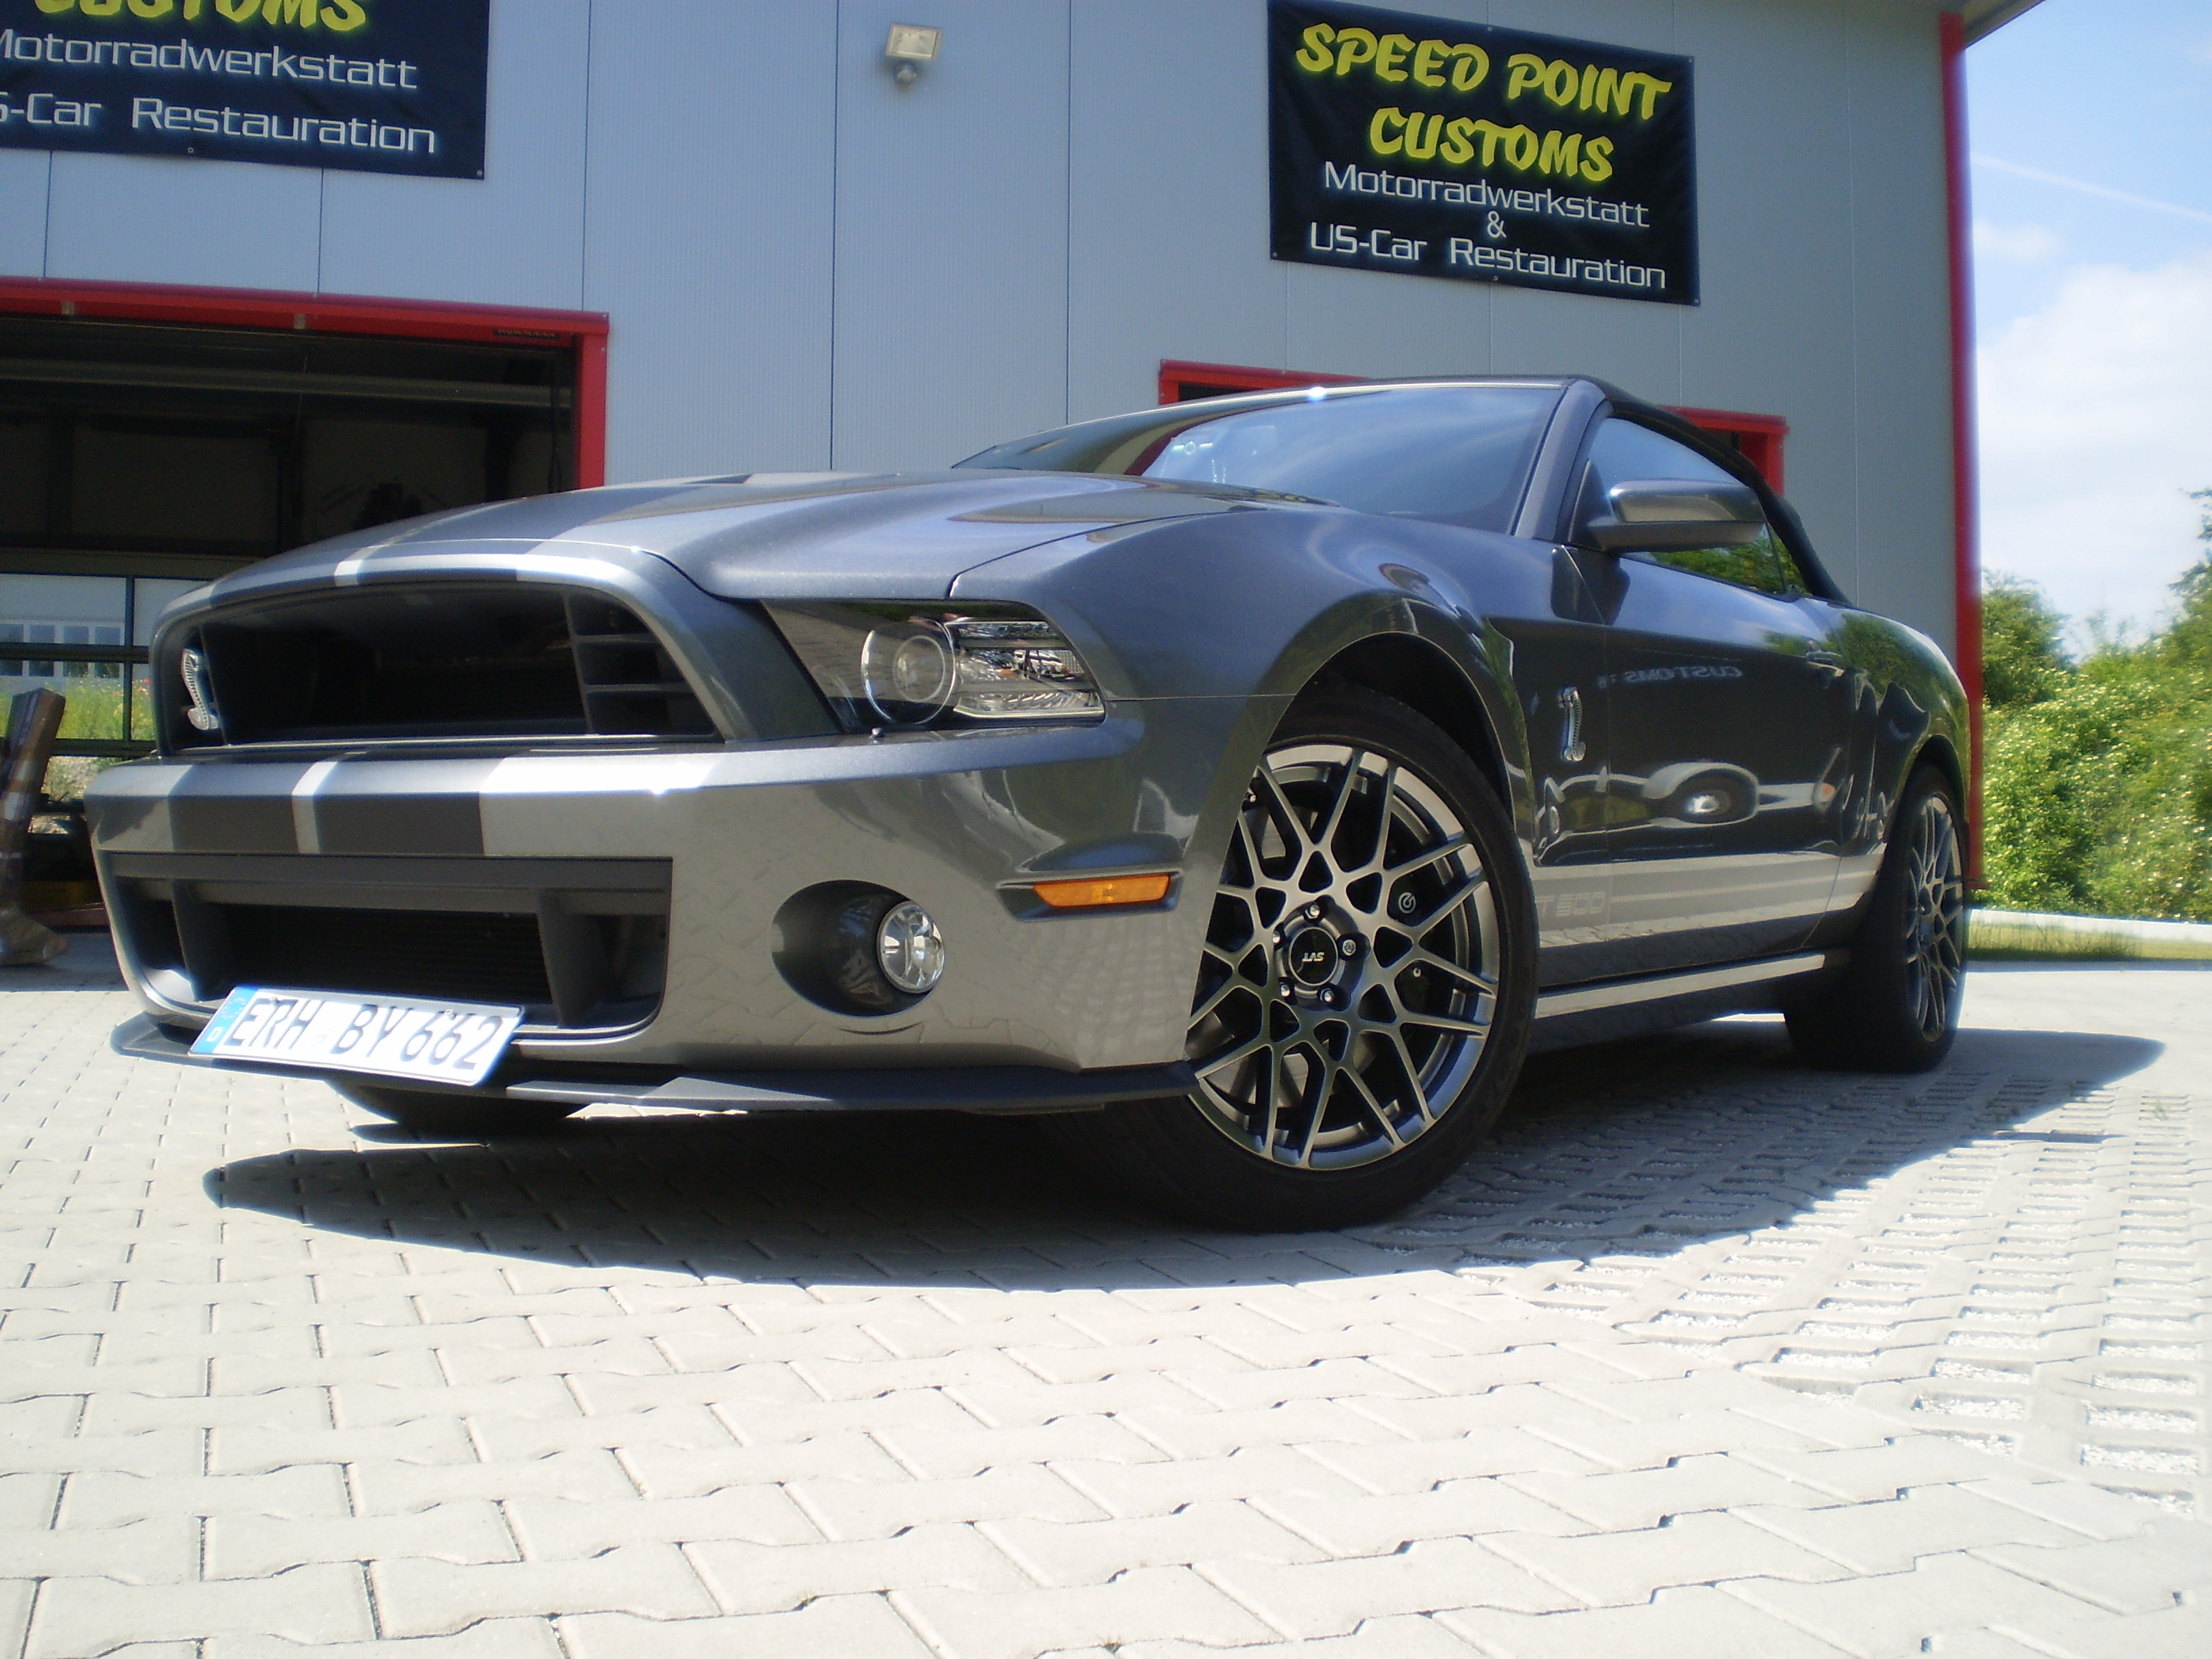 2013 Ford Mustang Shelby GT 500